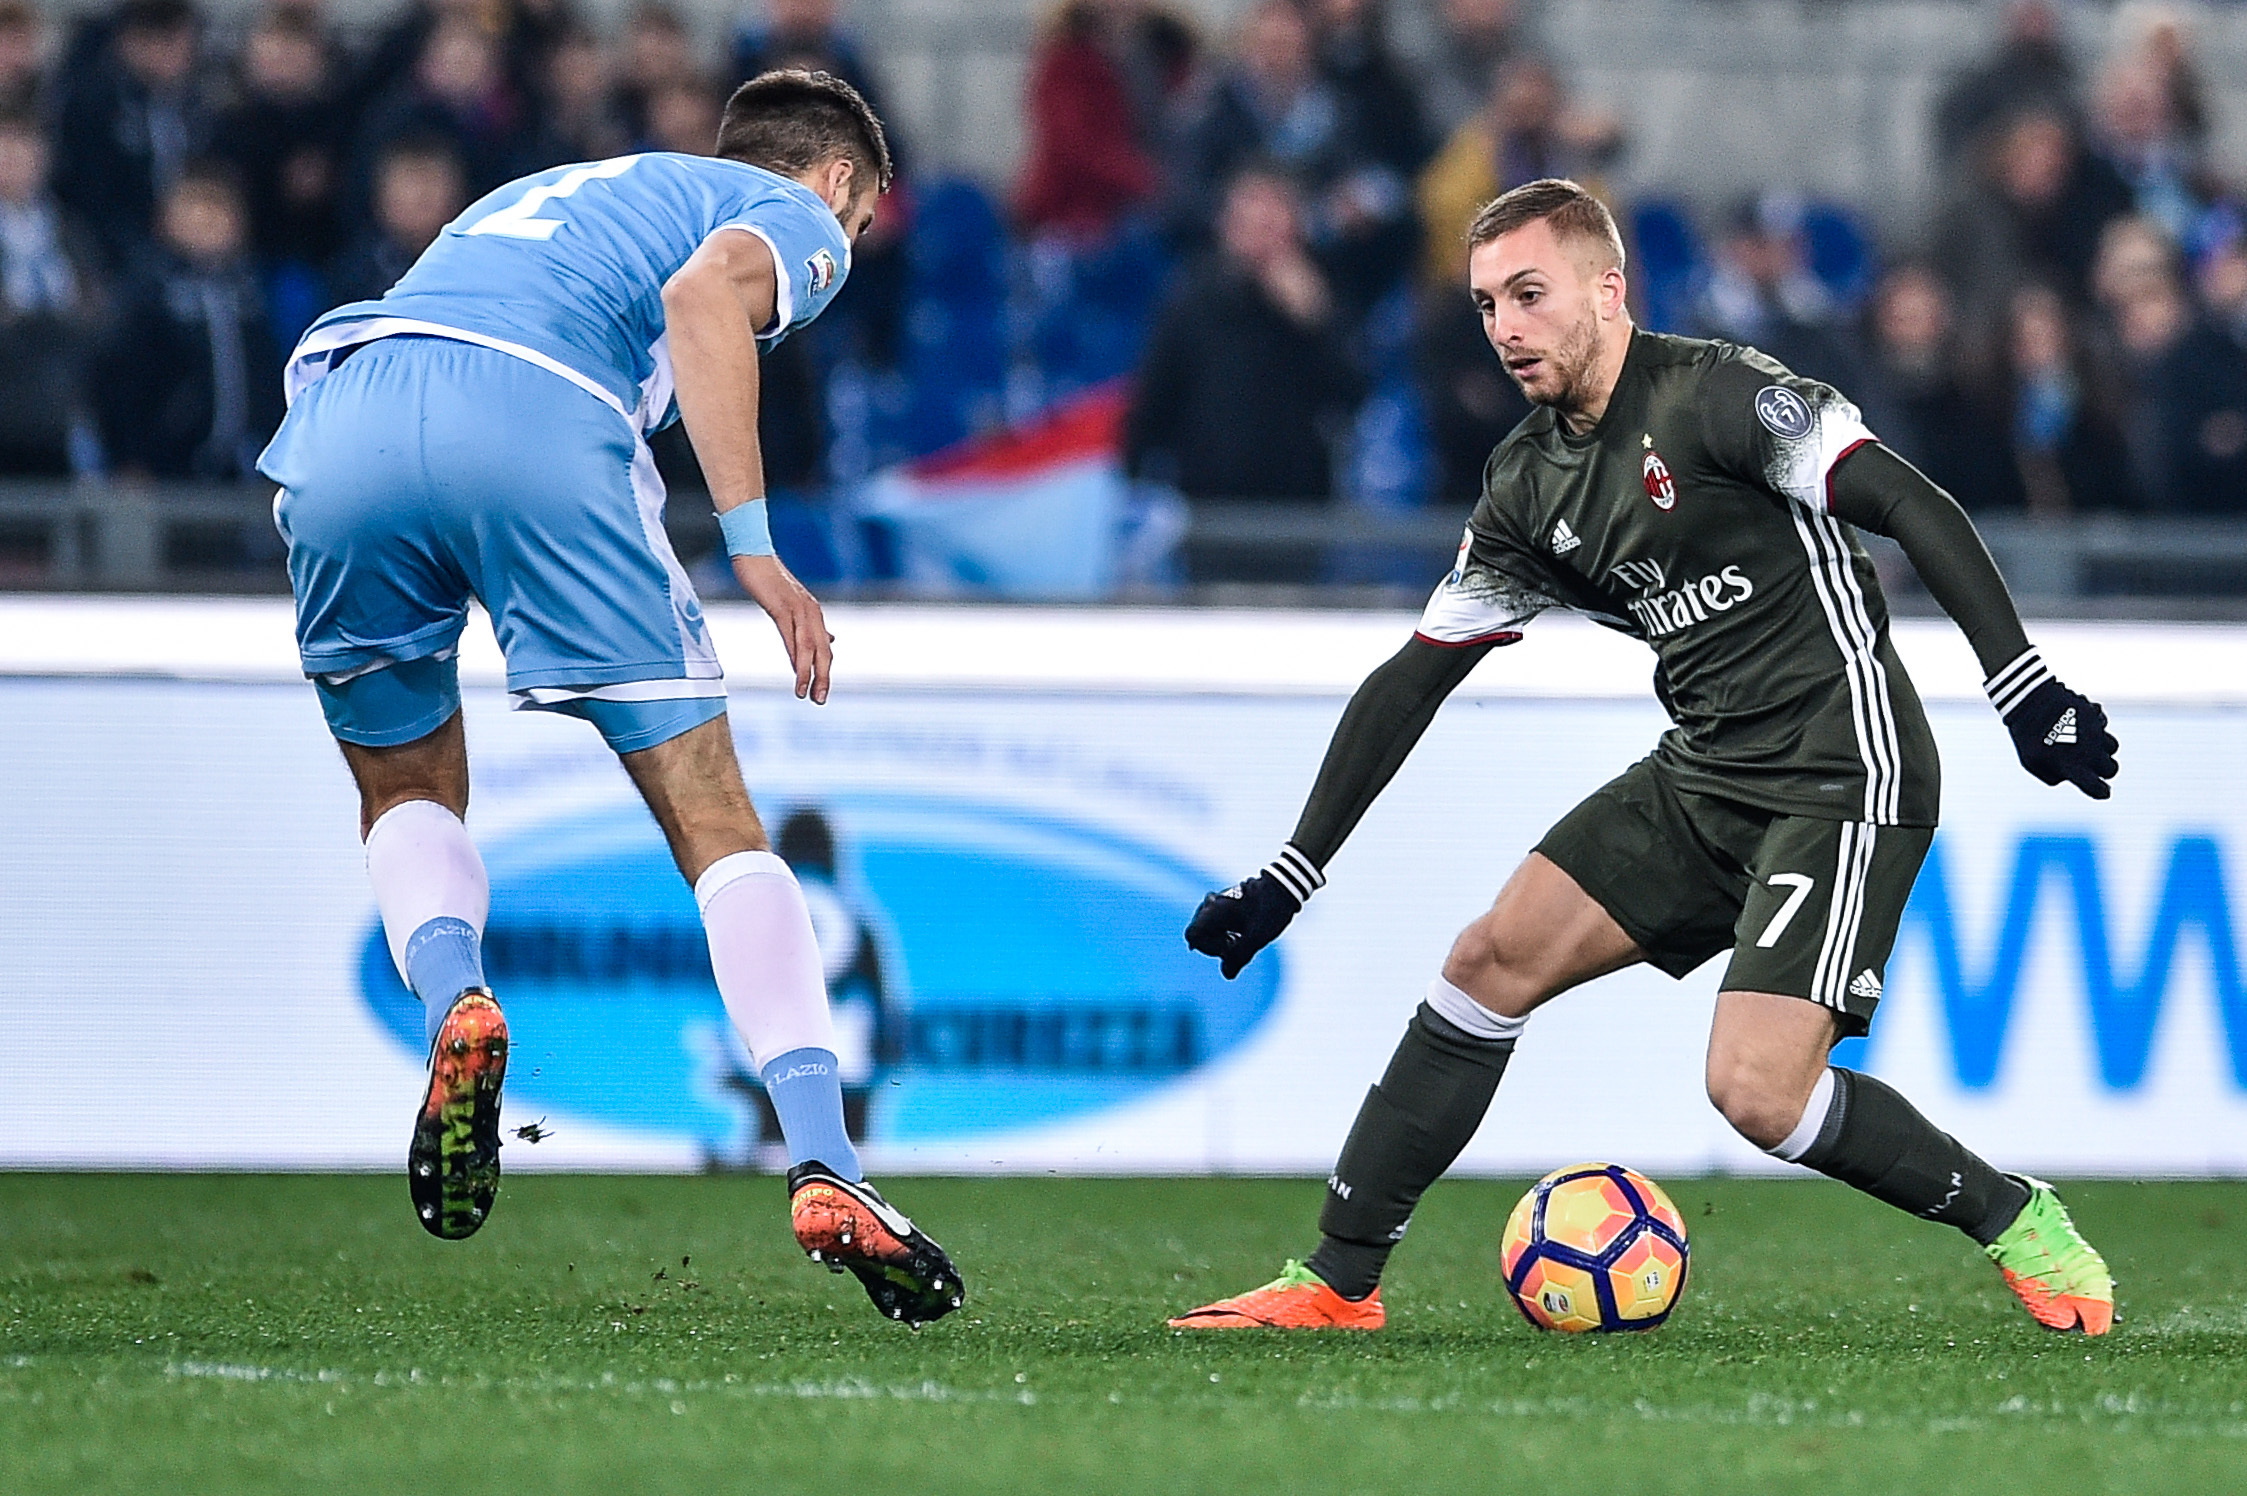 Deulofeu set for Premier League return with Watford